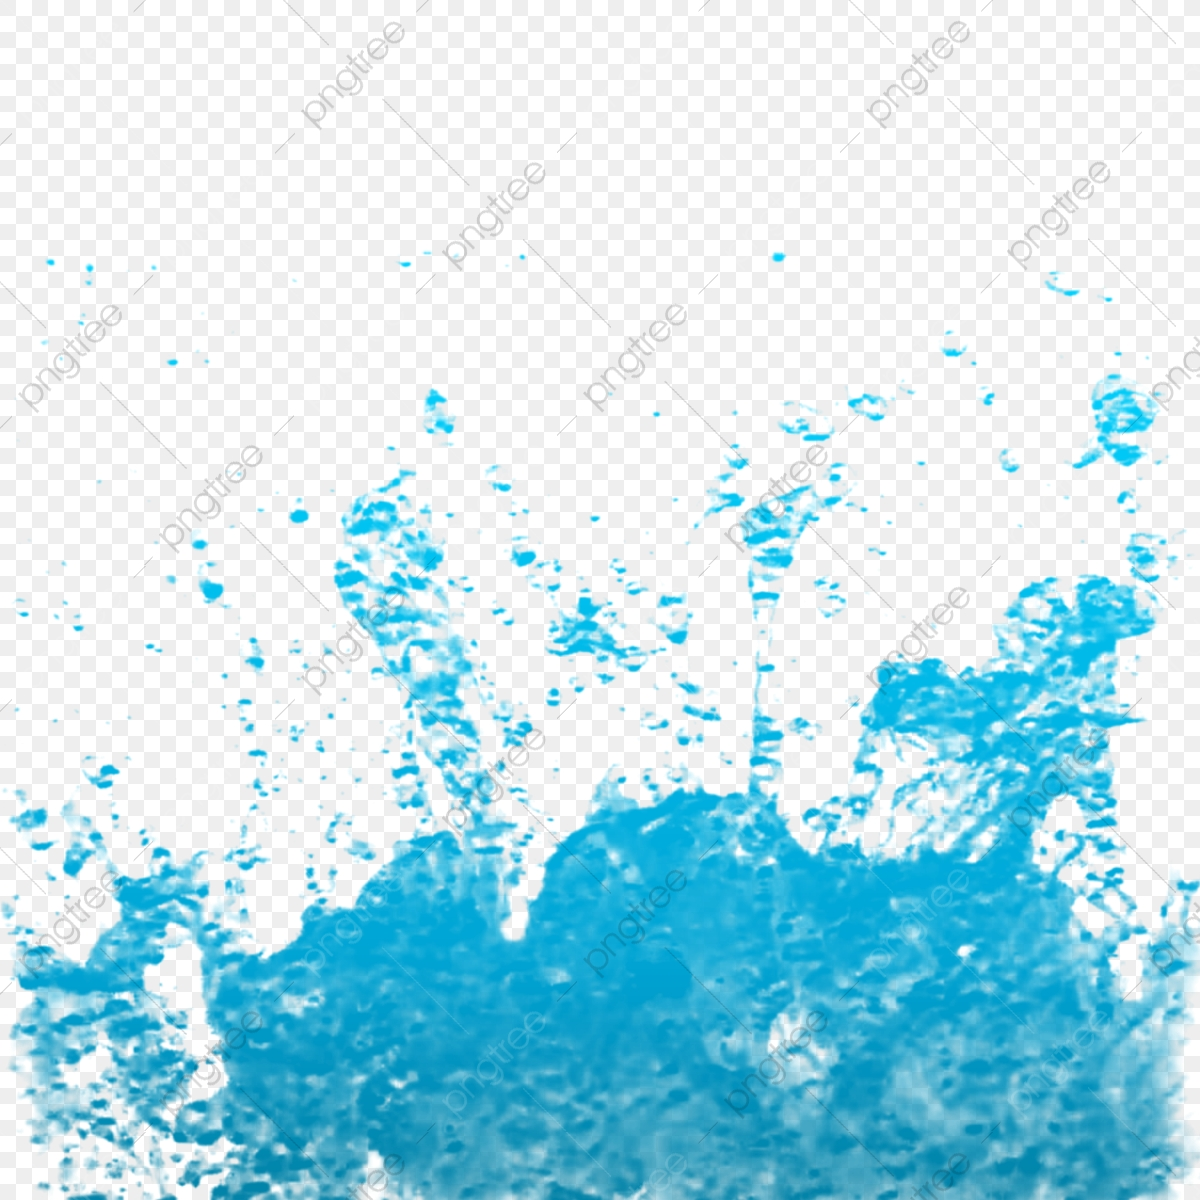 Blue Water Splash Clipart, Water Drop Vector Background, Sea.